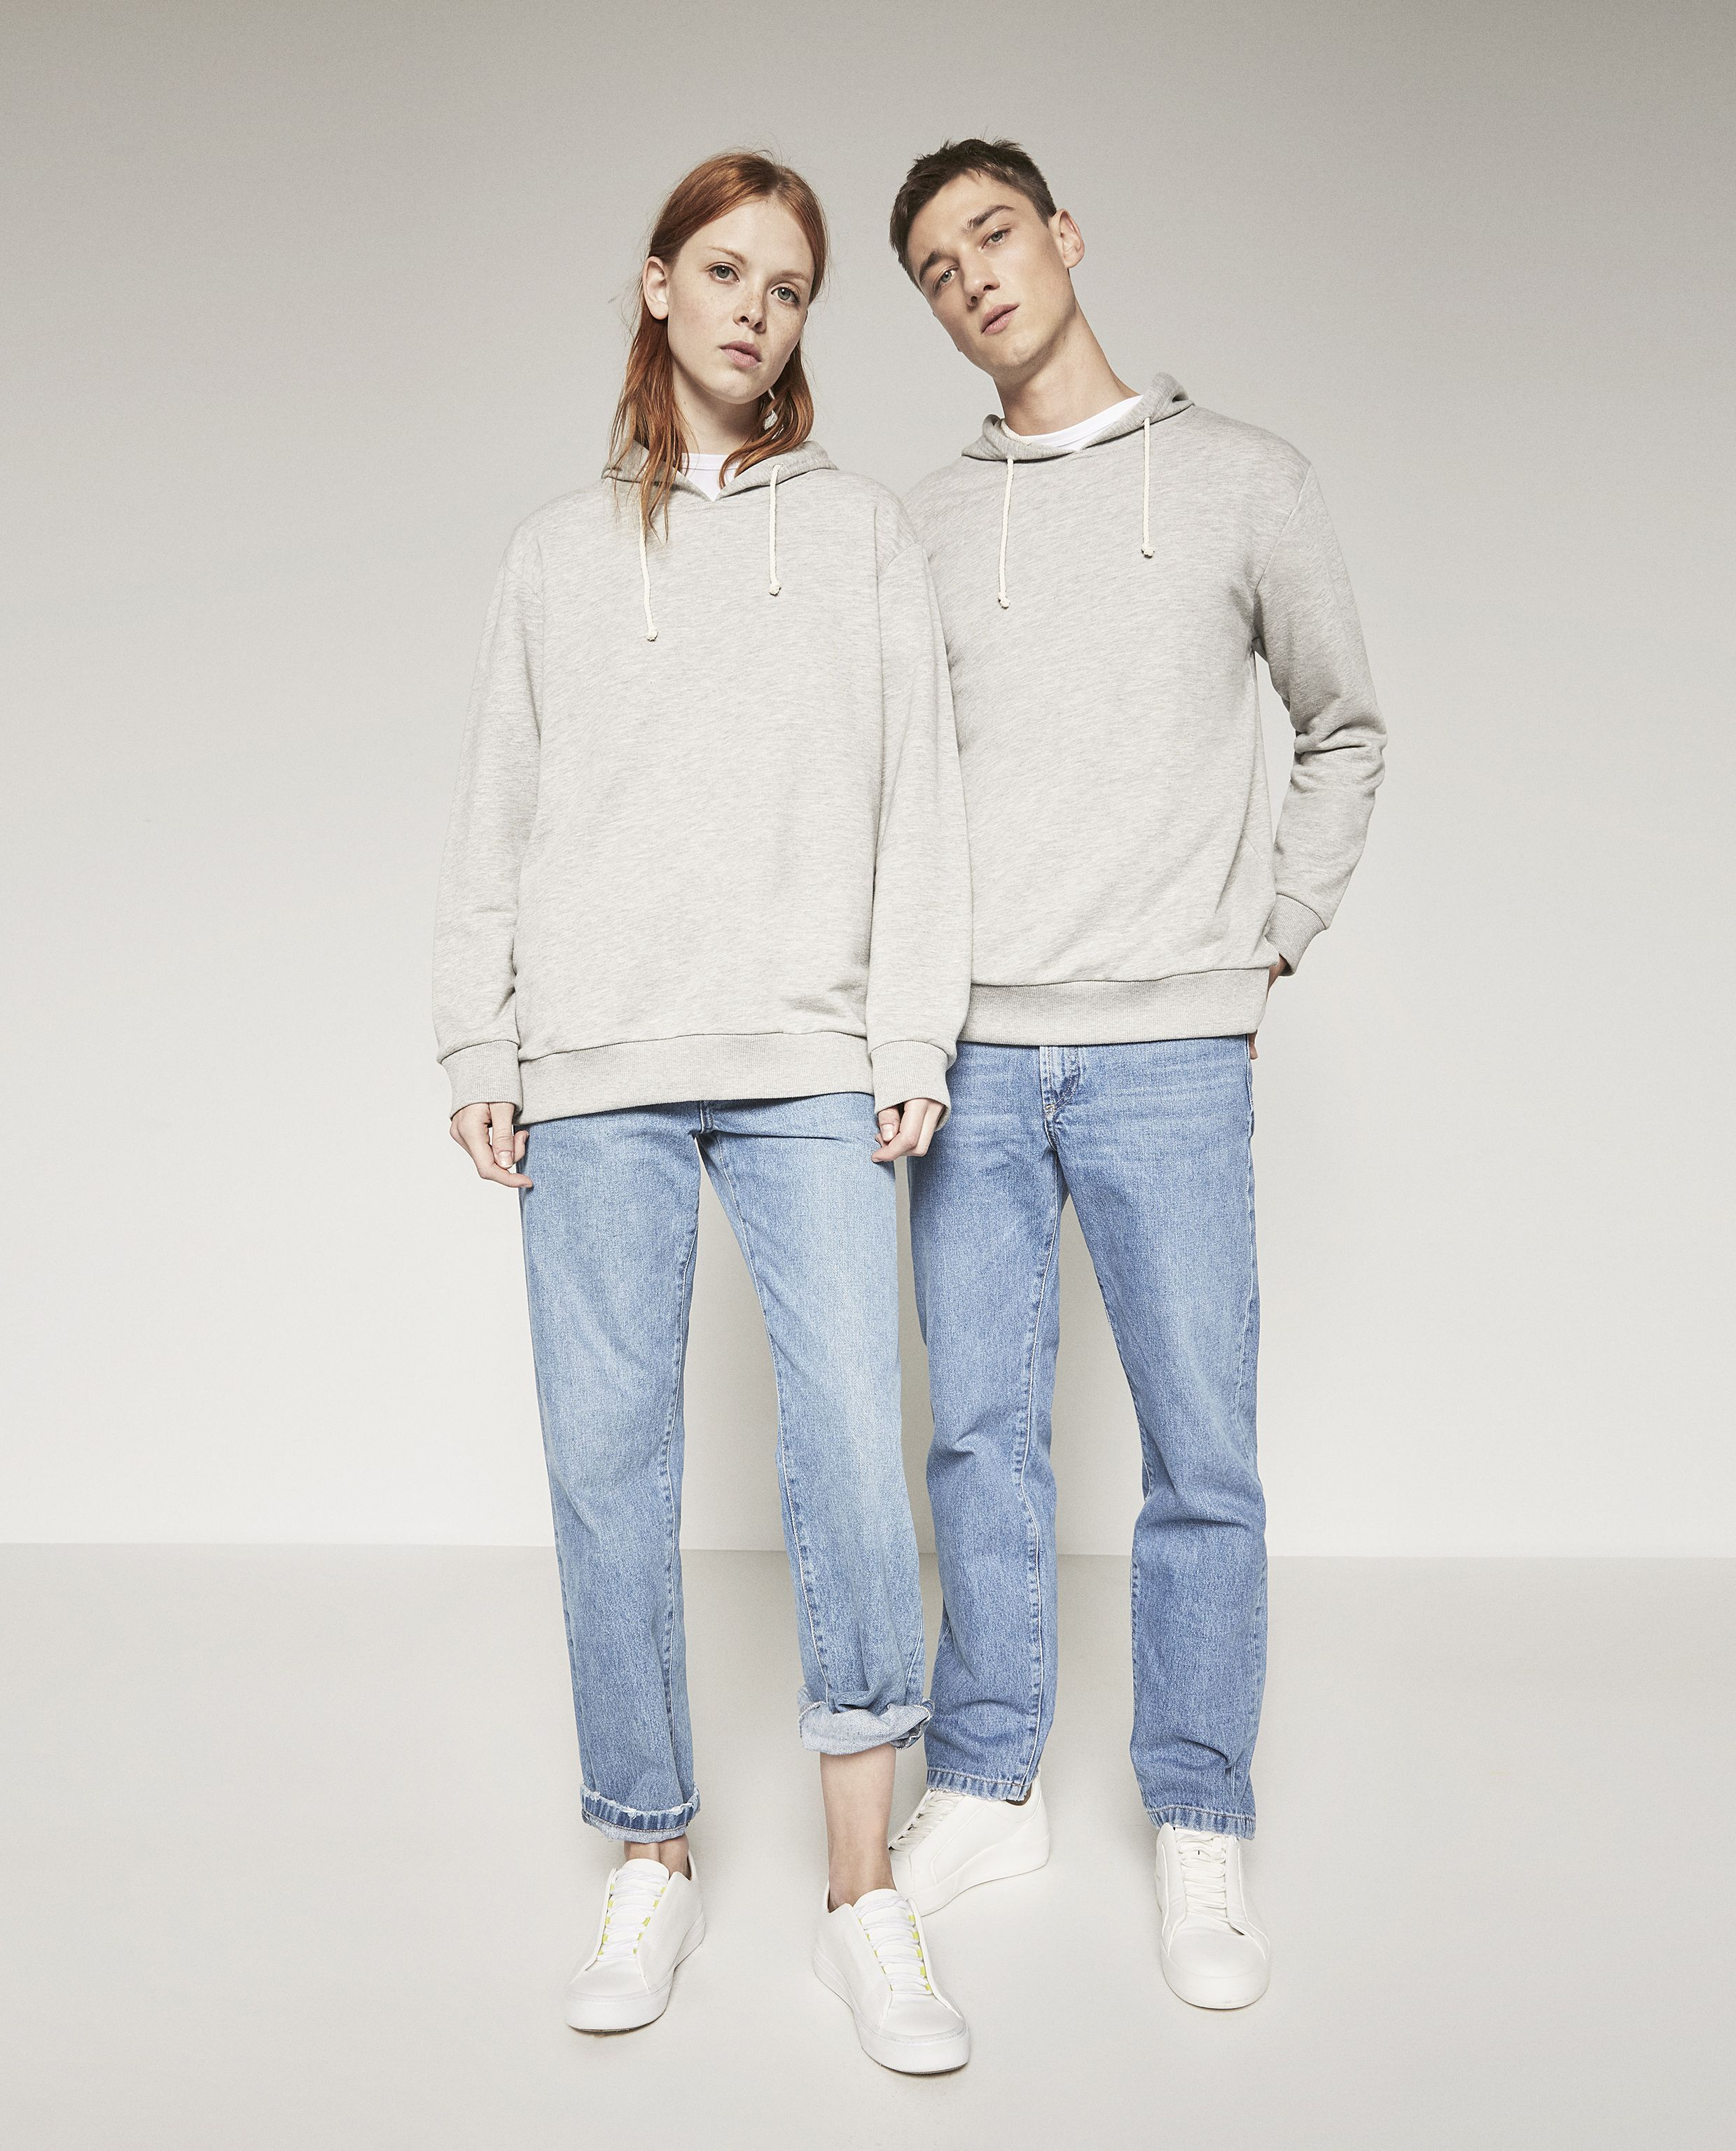 2588cd70 Zara have released an 'Ungendered' clothing line